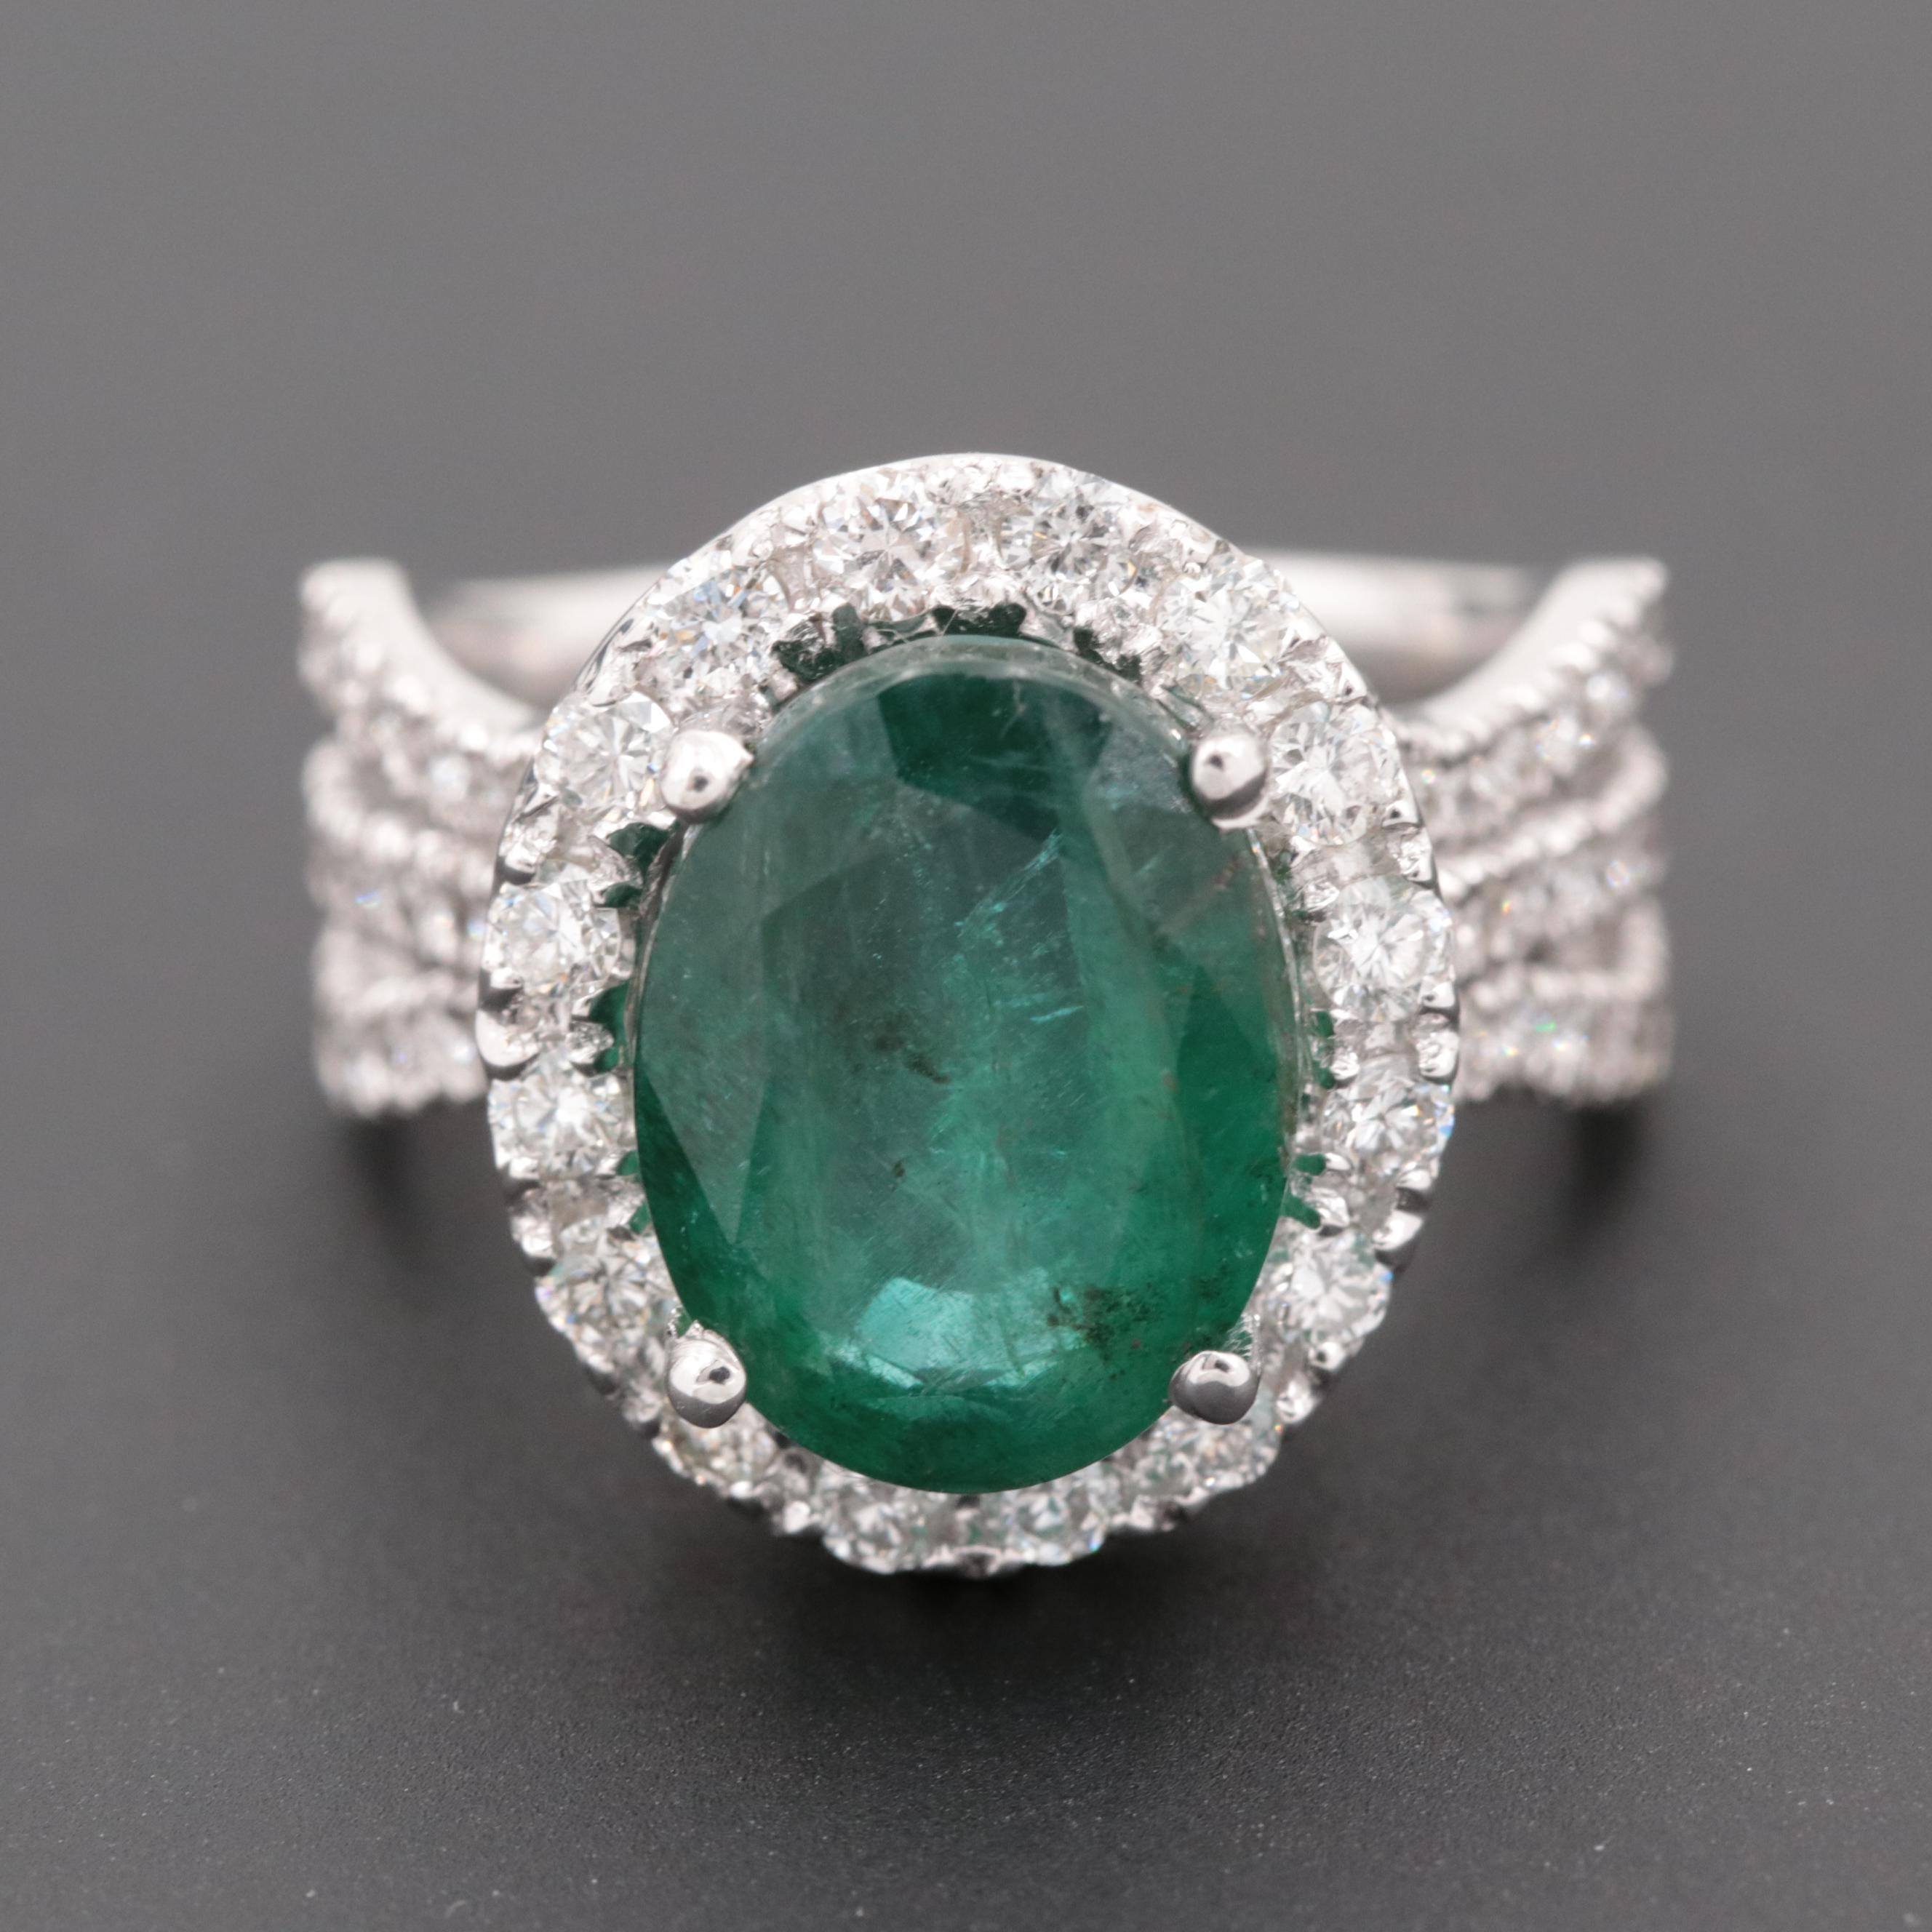 14K White Gold 4.20 CT Emerald and 1.08 CTW Diamond Ring